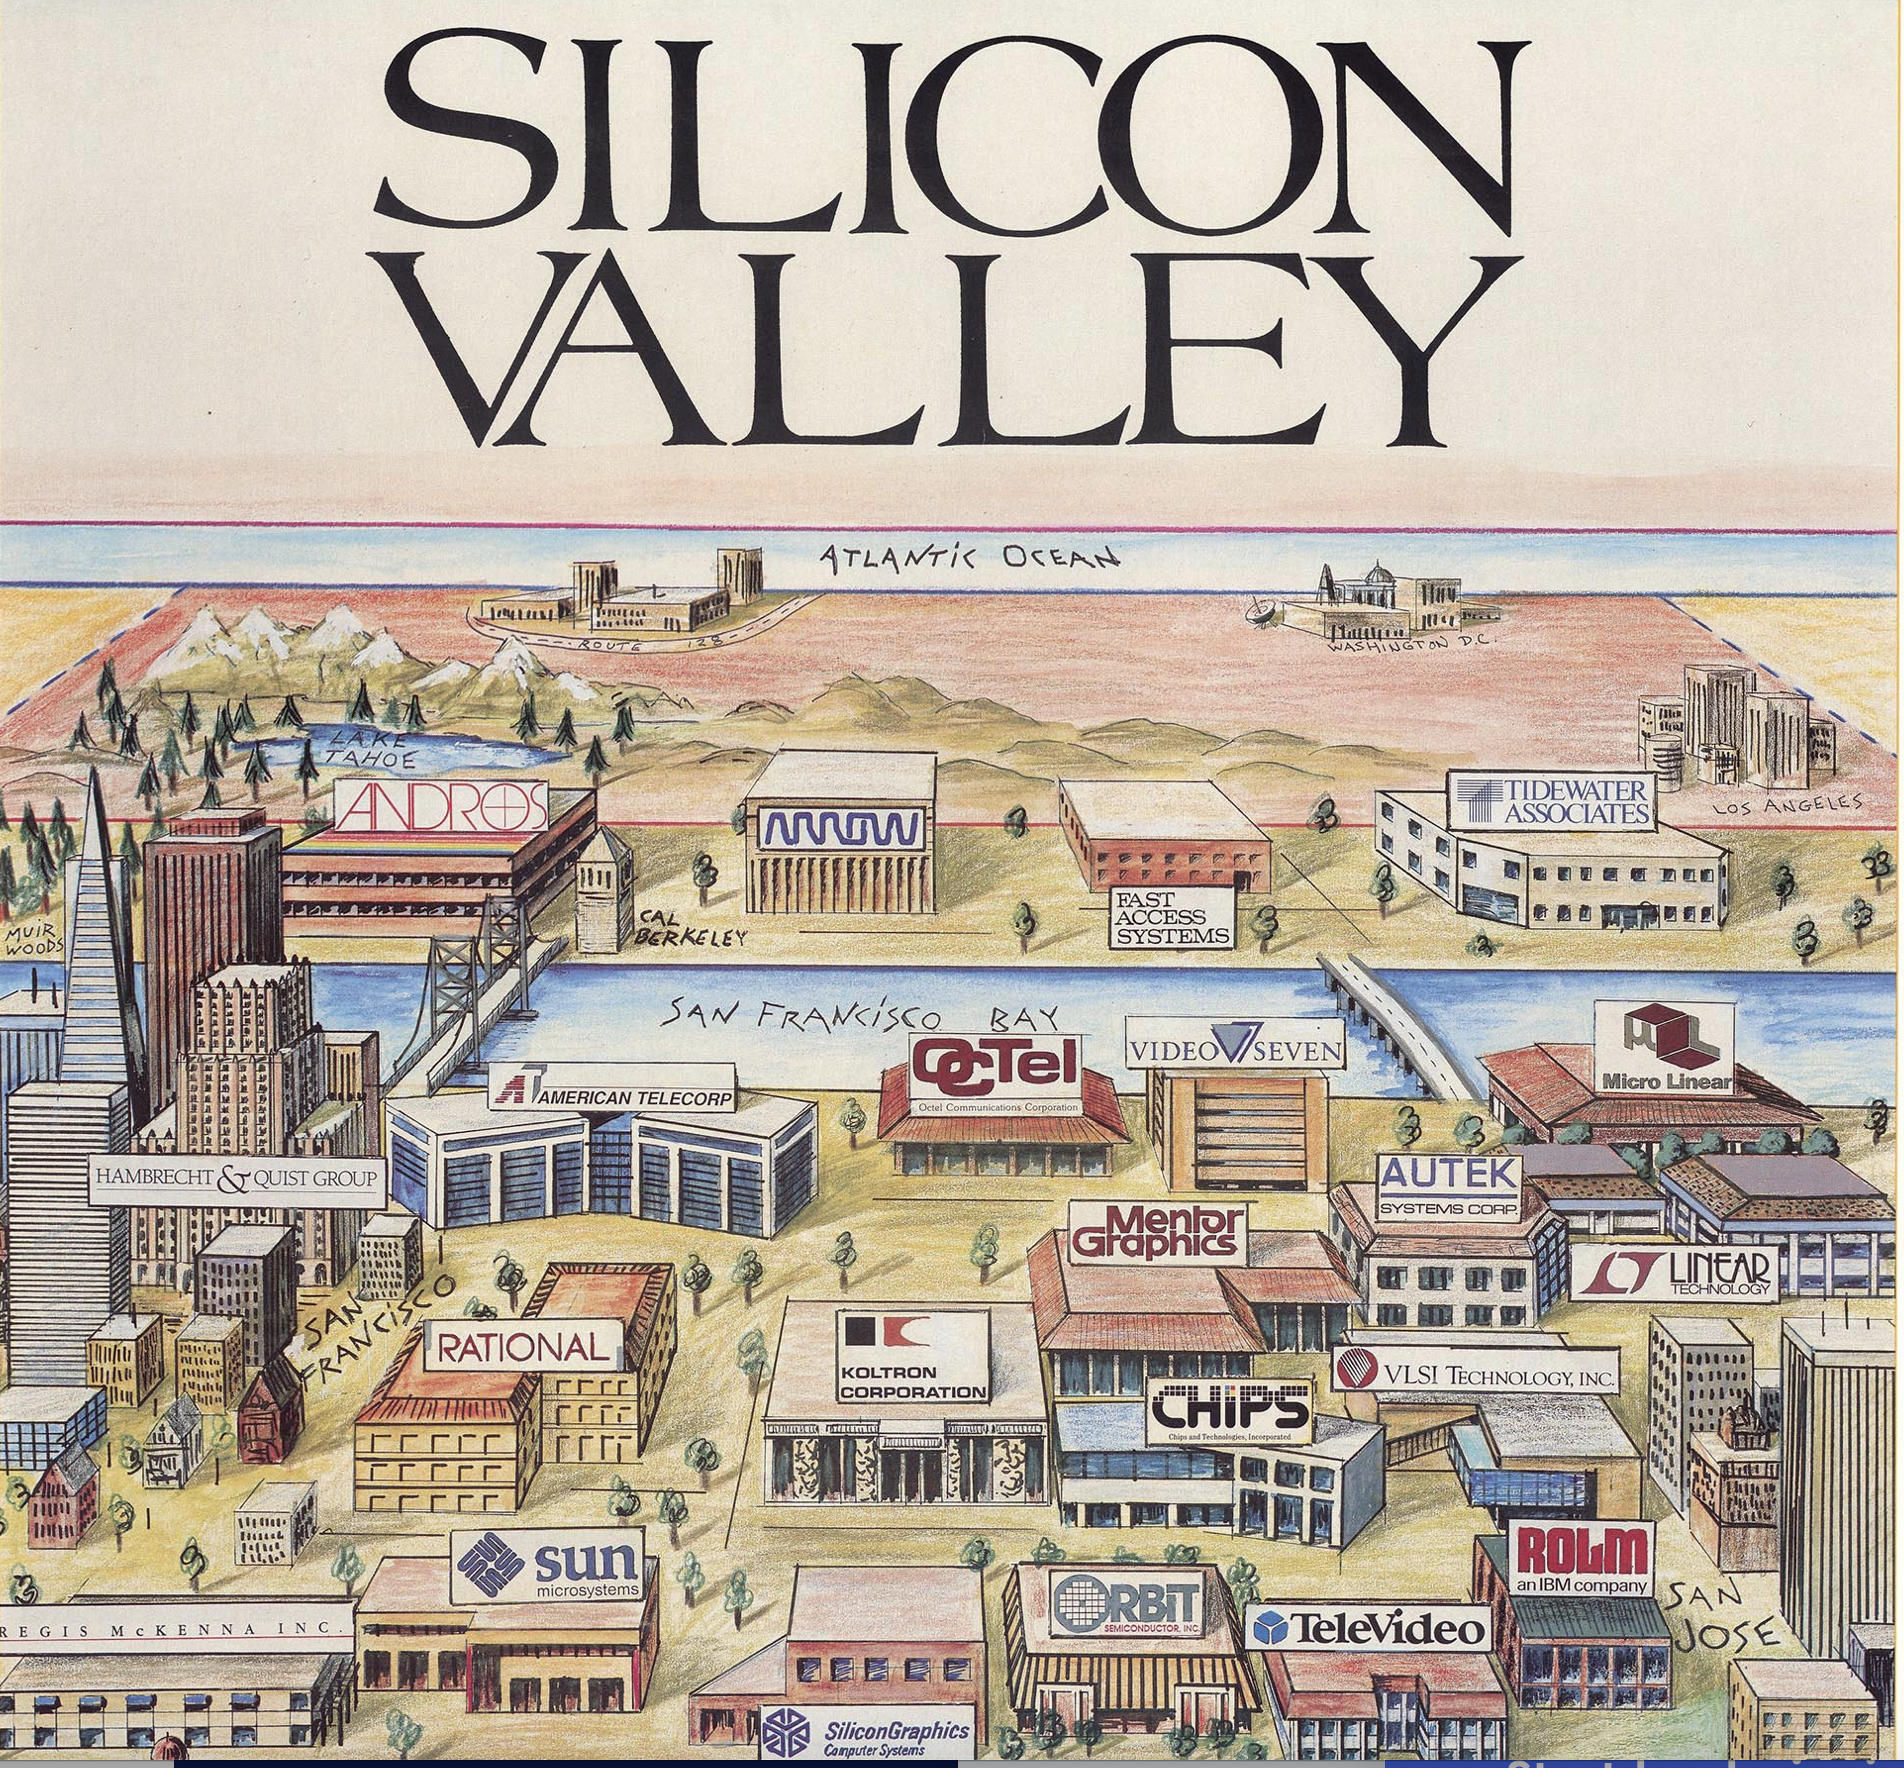 SPerber's Silicon Valley